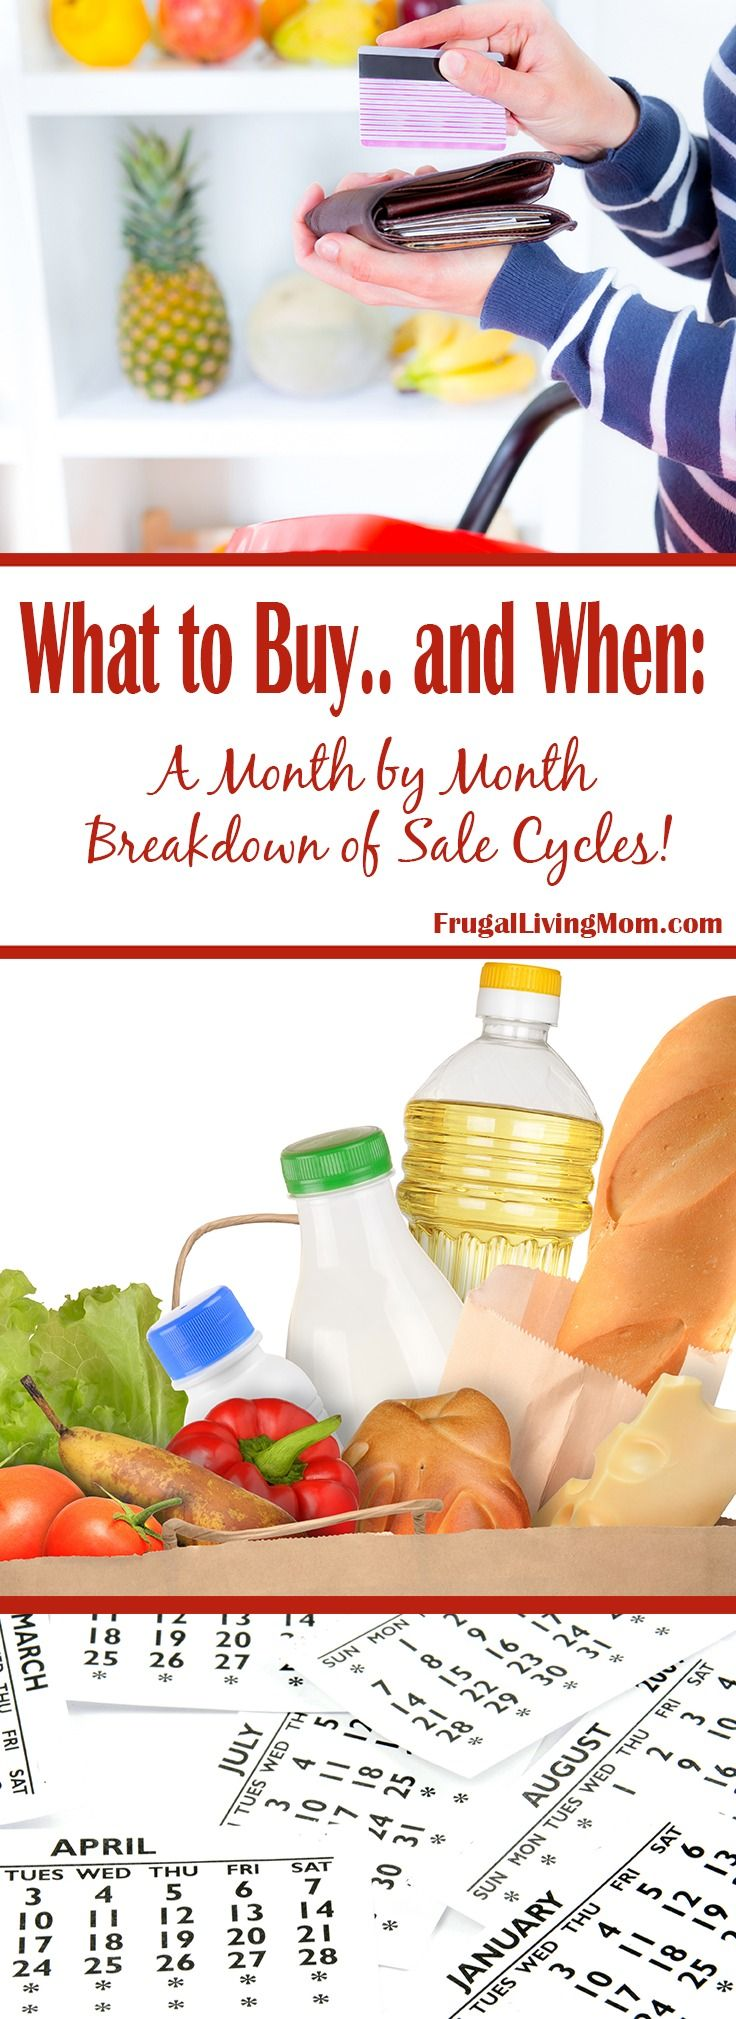 Do you know which items are on known for being on sale each month? Believe it or not, there is a formula for What to Buy. Certain products go on sale at certain times of the year.